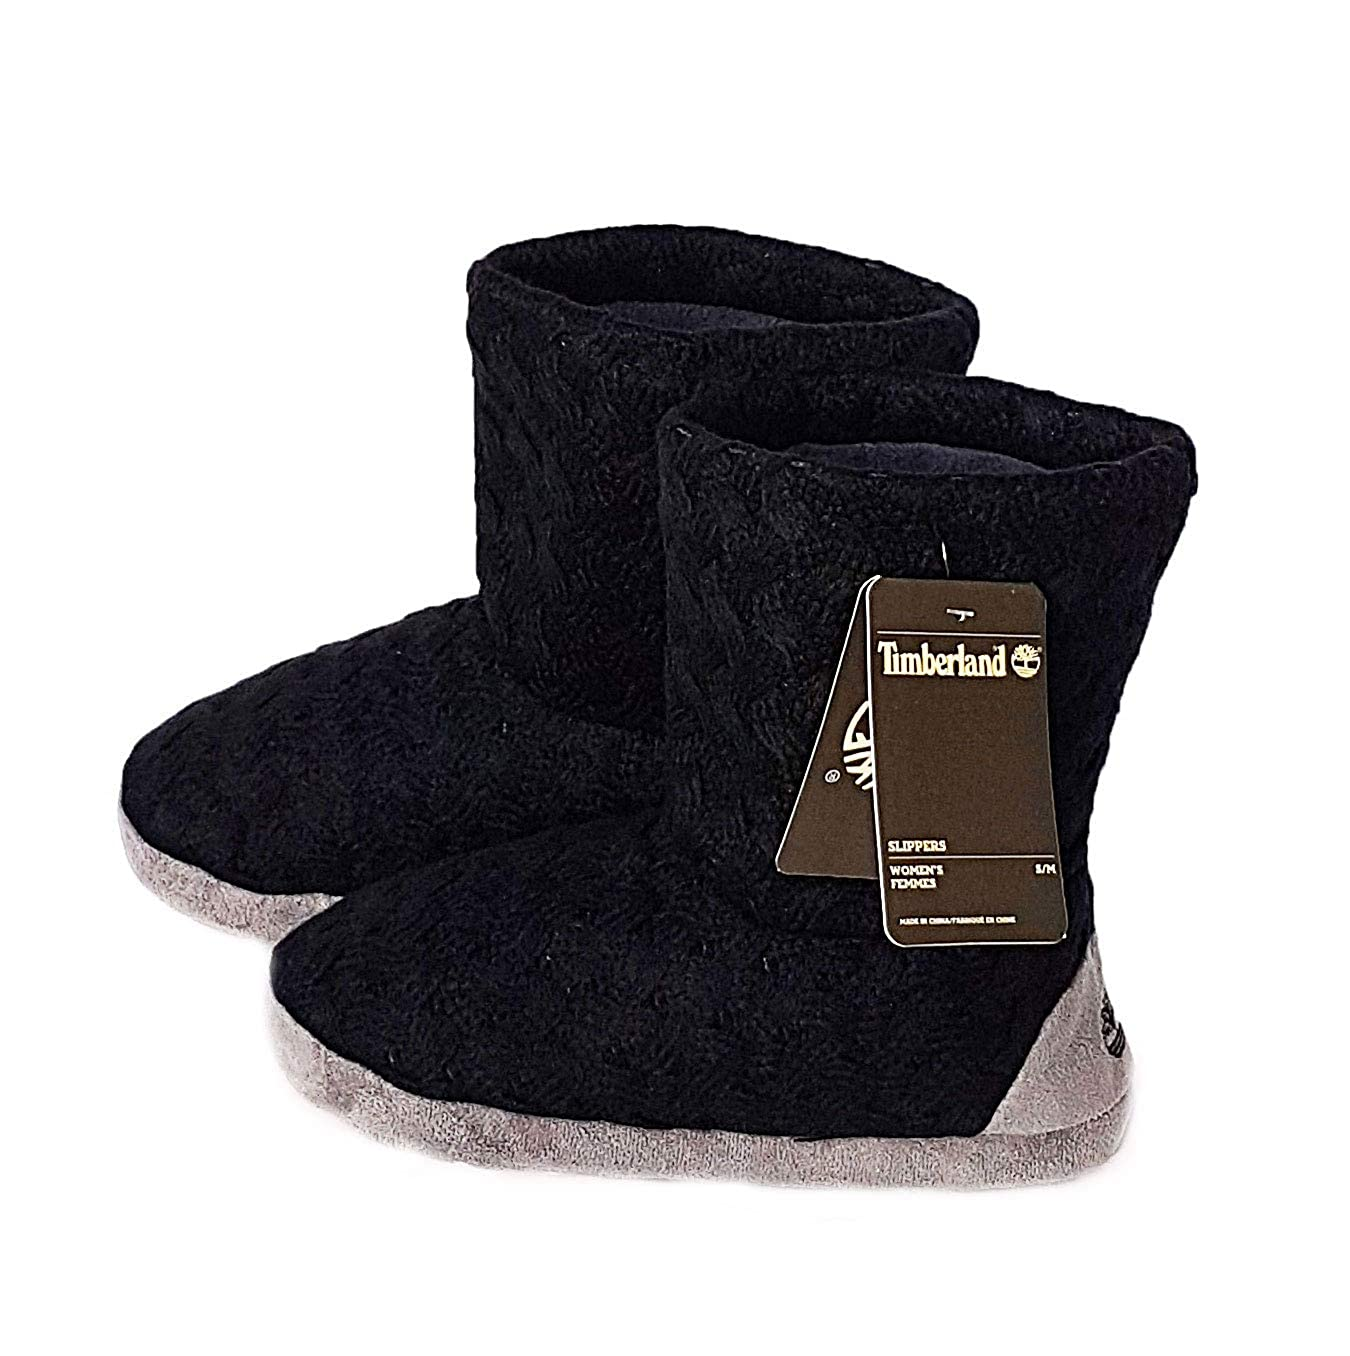 7a5aabab1069 Timberland Slipper Boots Indoor Ladies Girls Black Knitted Style   Amazon.co.uk  Shoes   Bags